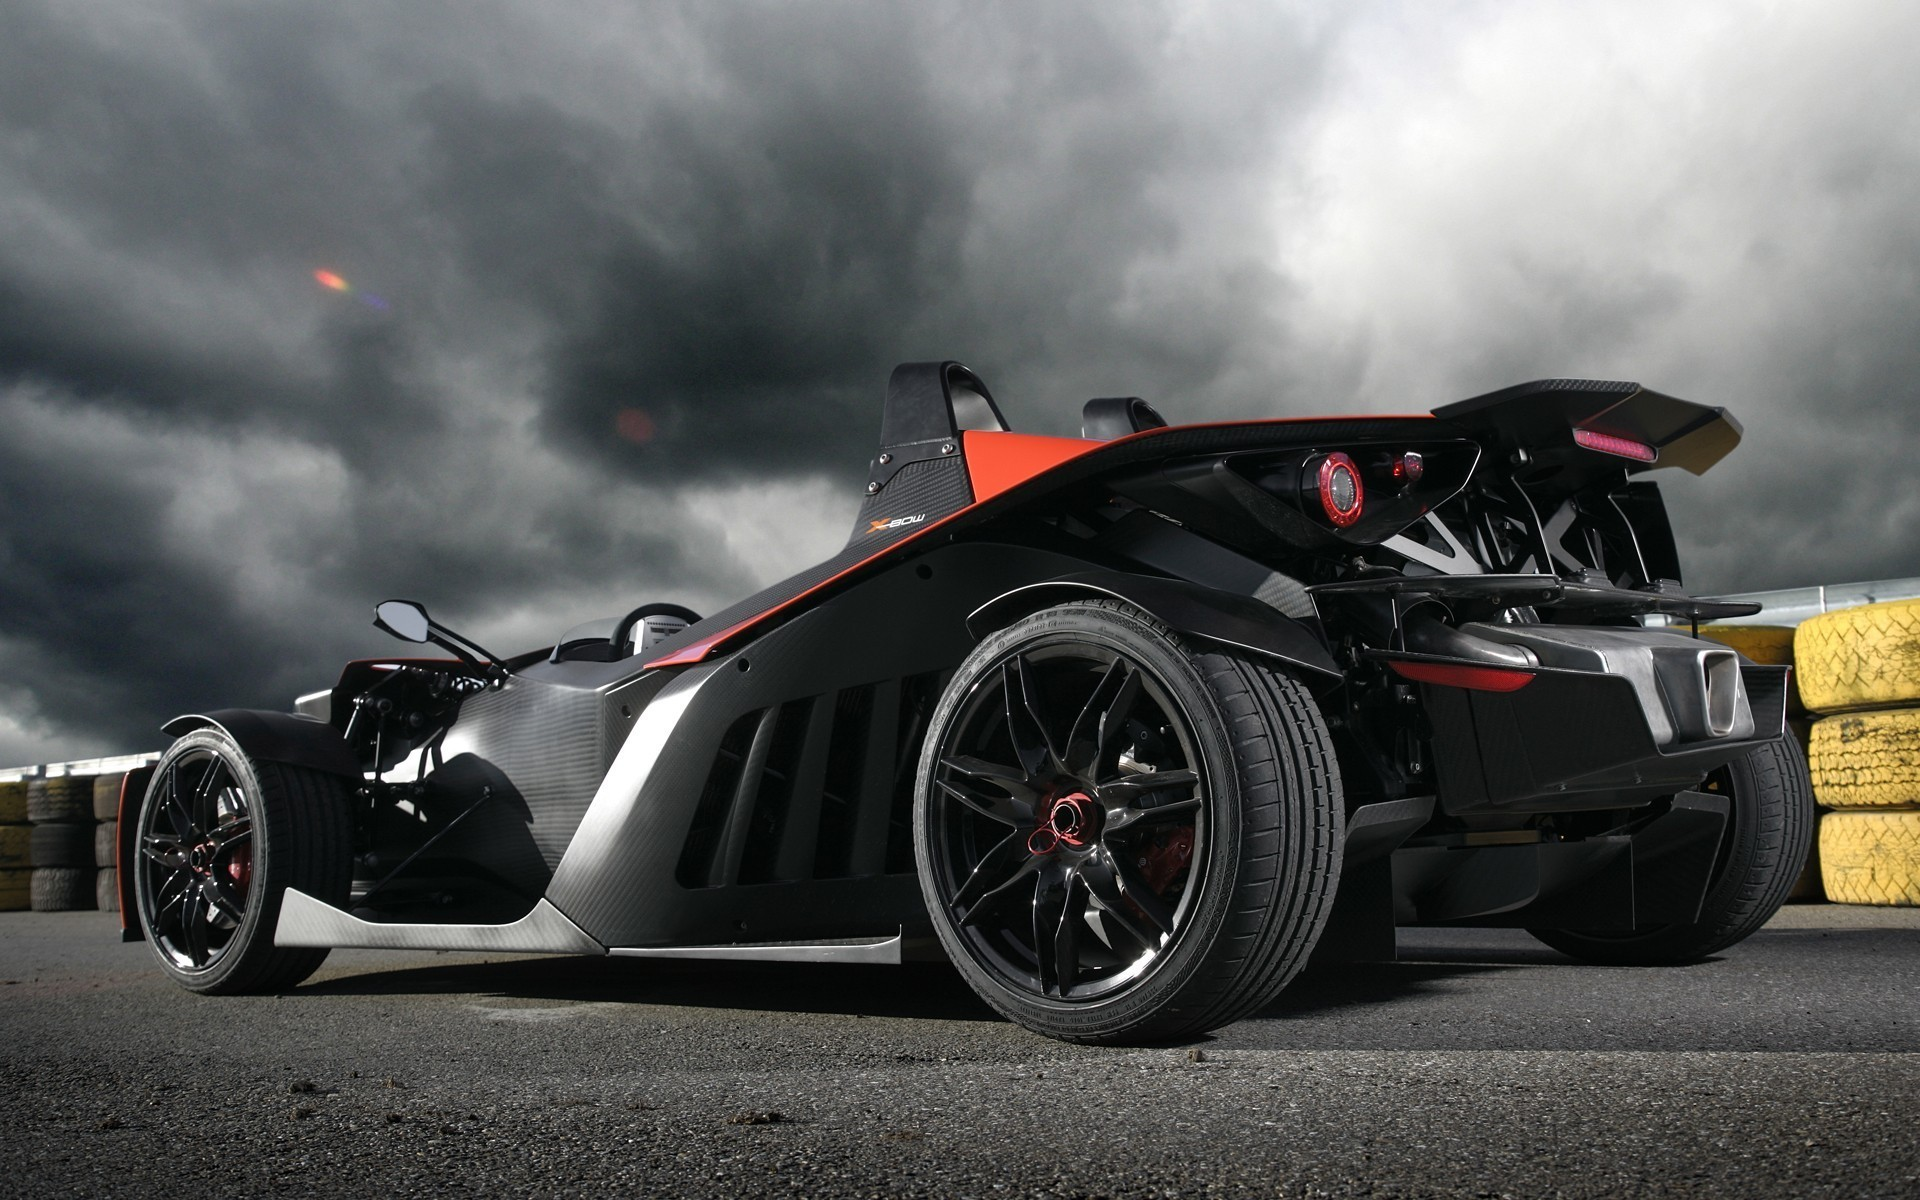 Best Car ever wallpapers and images – wallpapers, pictures, photos